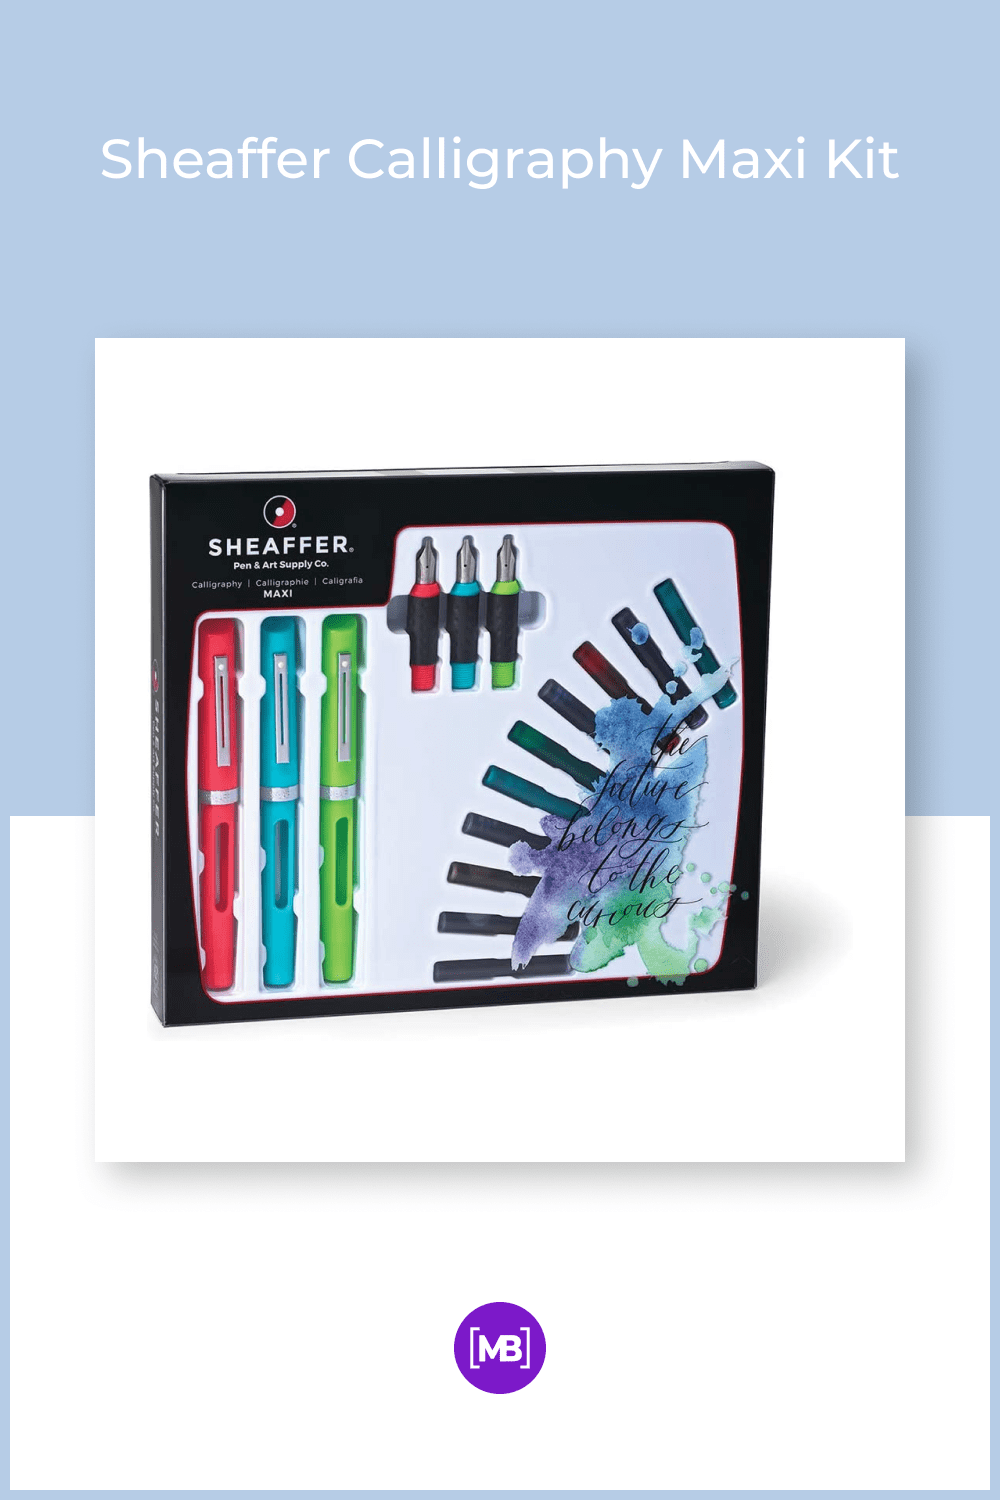 A party in a box for the dedicated calligrapher of any level! Three pens, each with a different nib grade, and a generous assortment of ink colors allow for multiple colors on the same project without cleaning the pen.